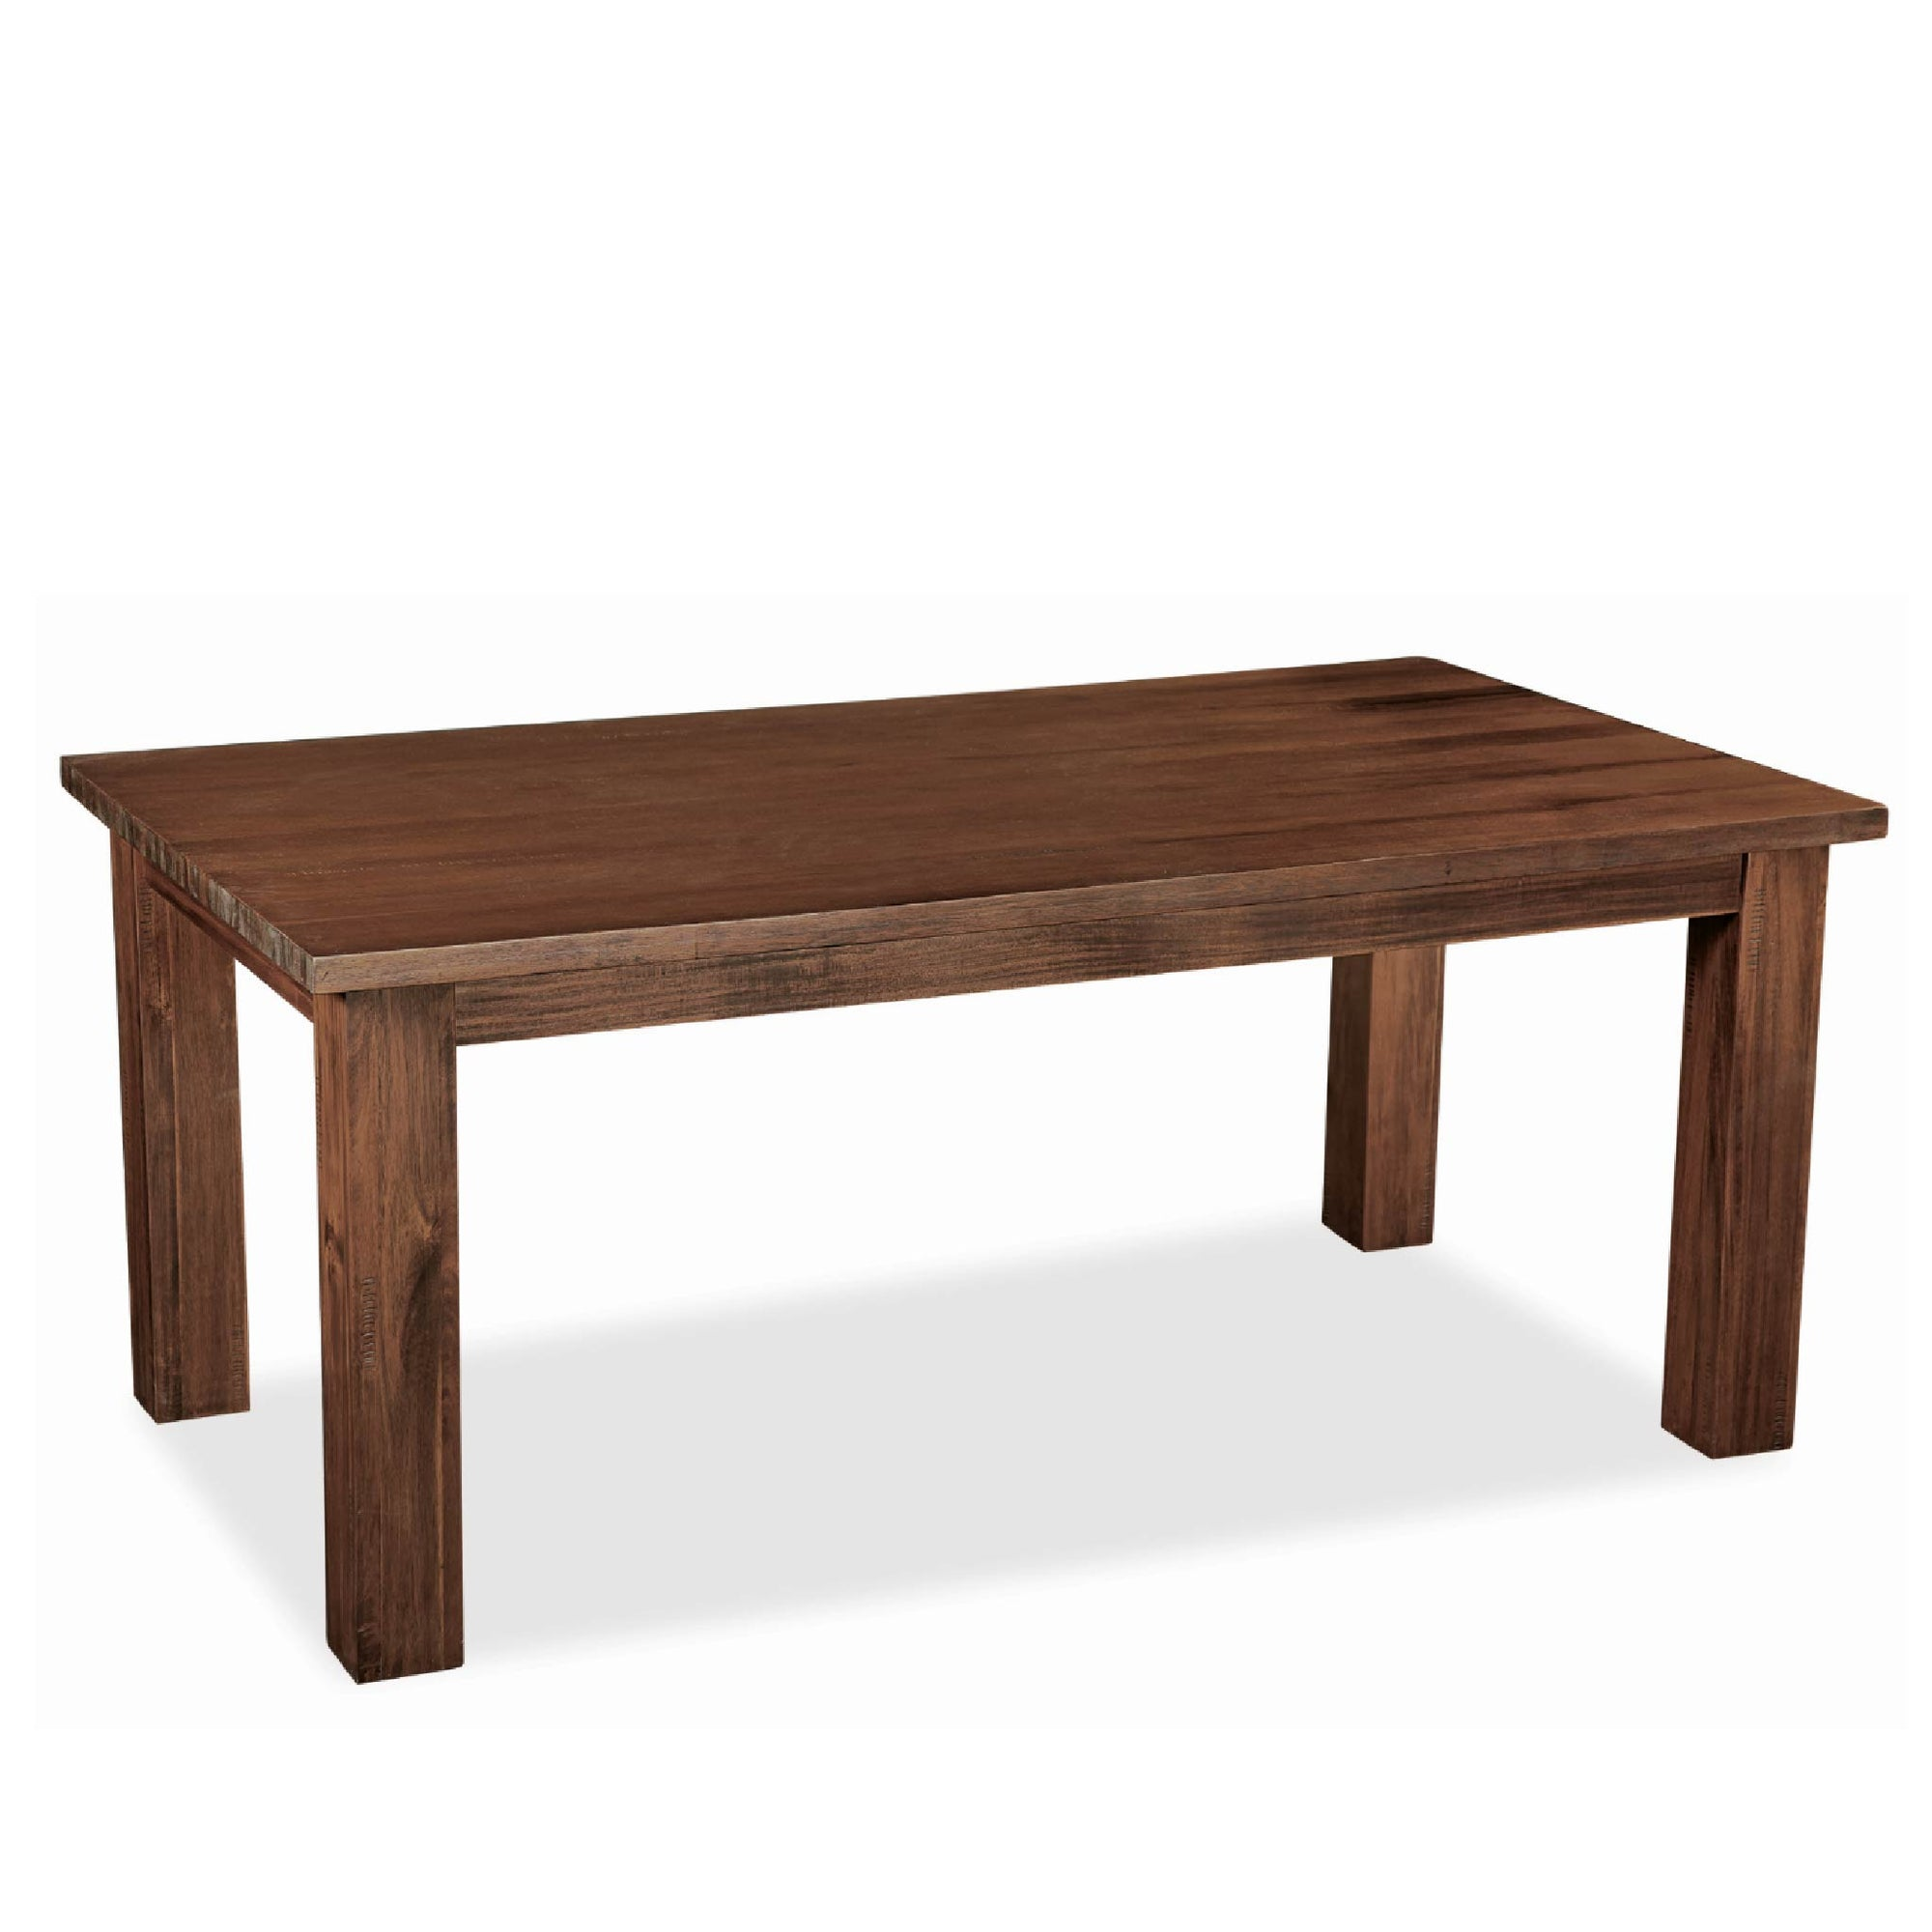 Ladock Dining Table by Roseland Furniture